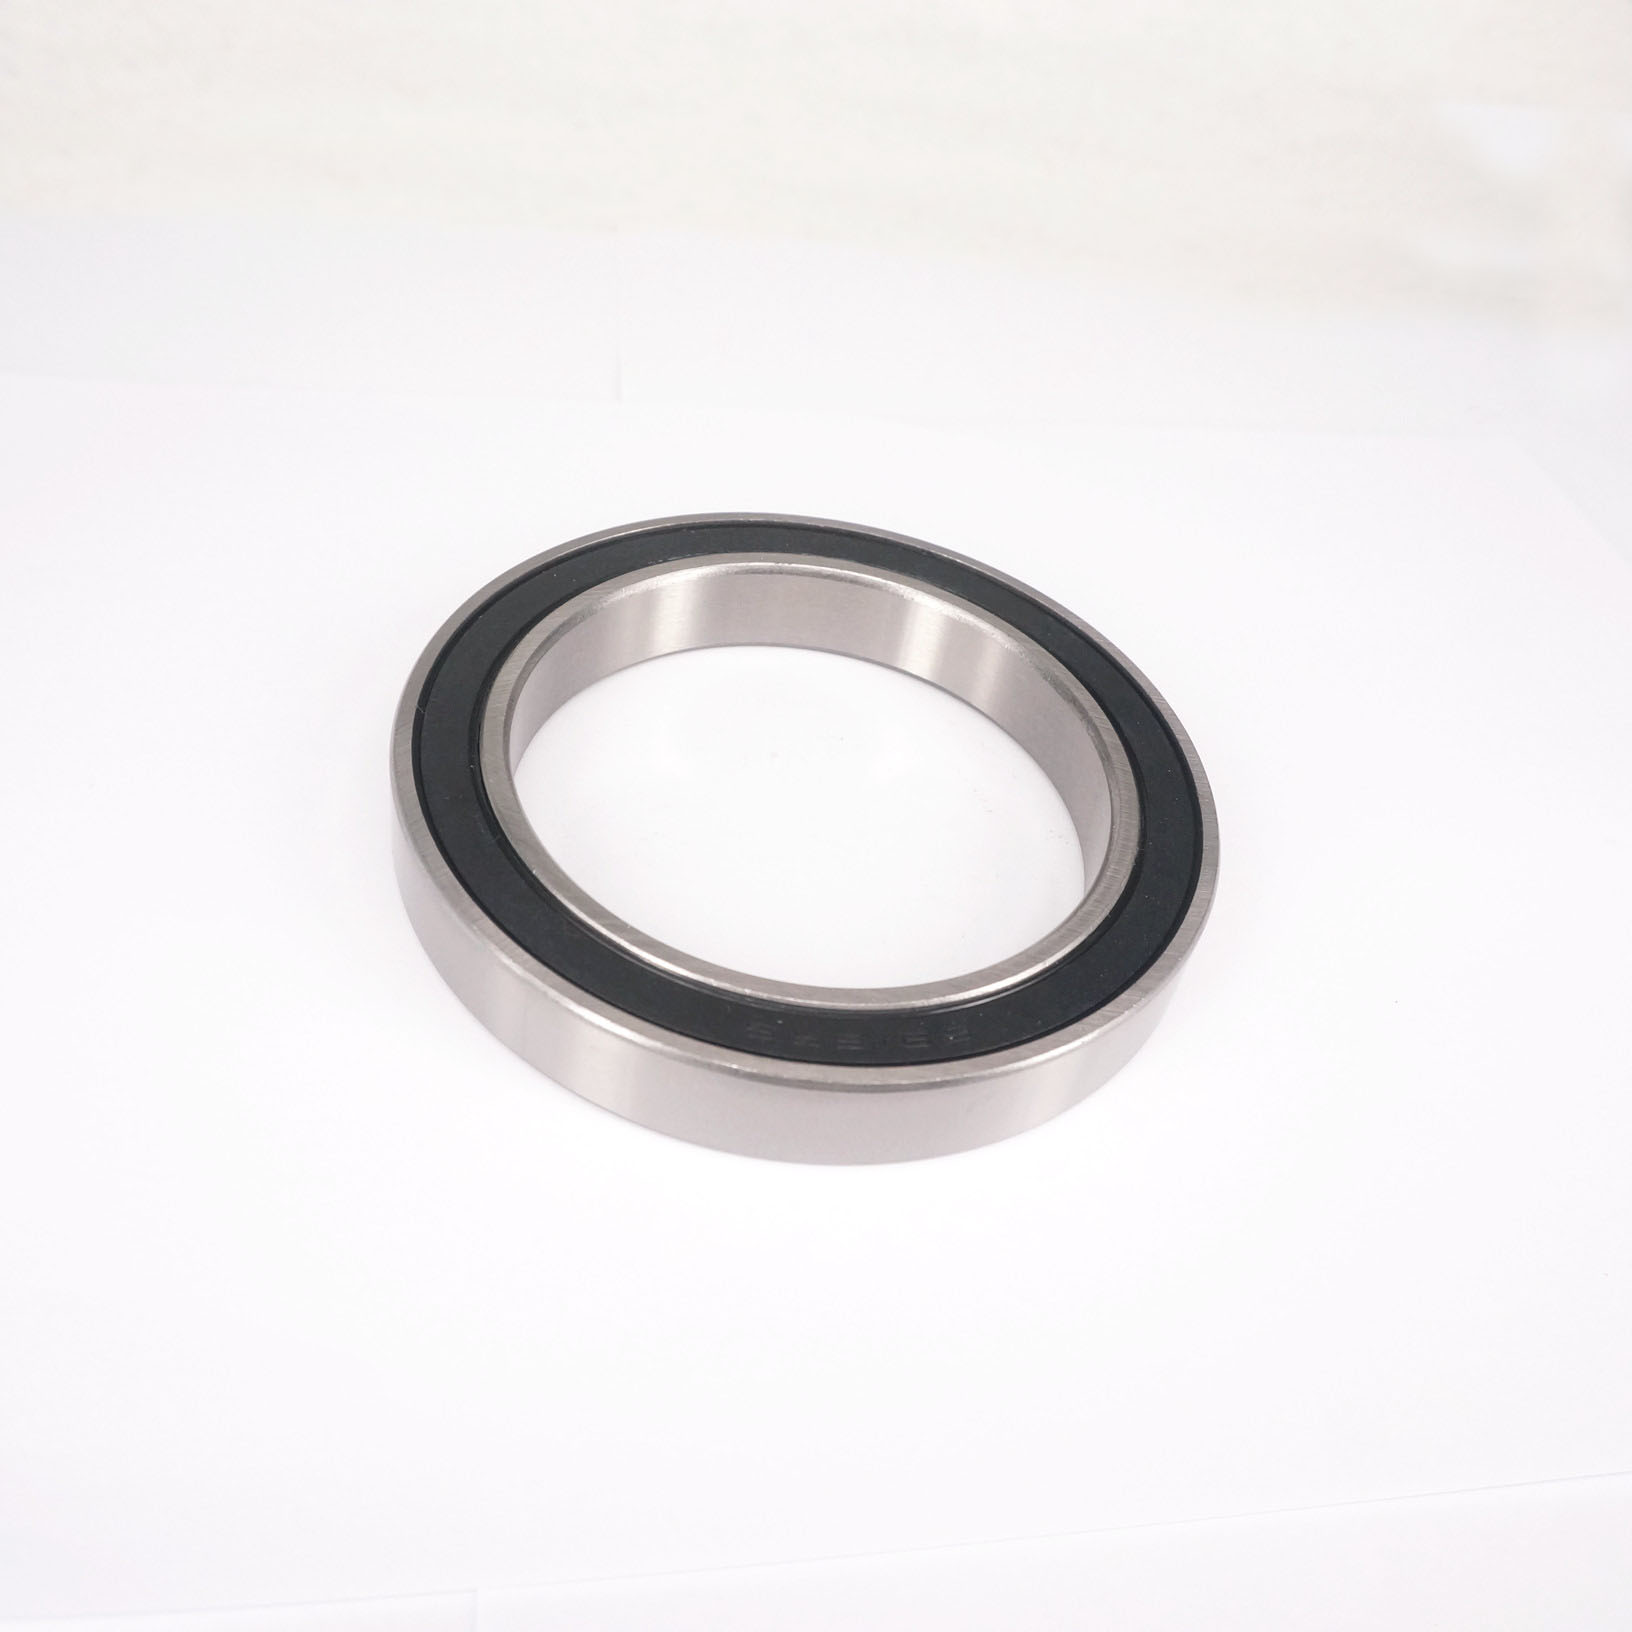 6909-2RS 45x68x12mm ABEC1 Thin-wall Shielded Deep Groove Ball Bearing